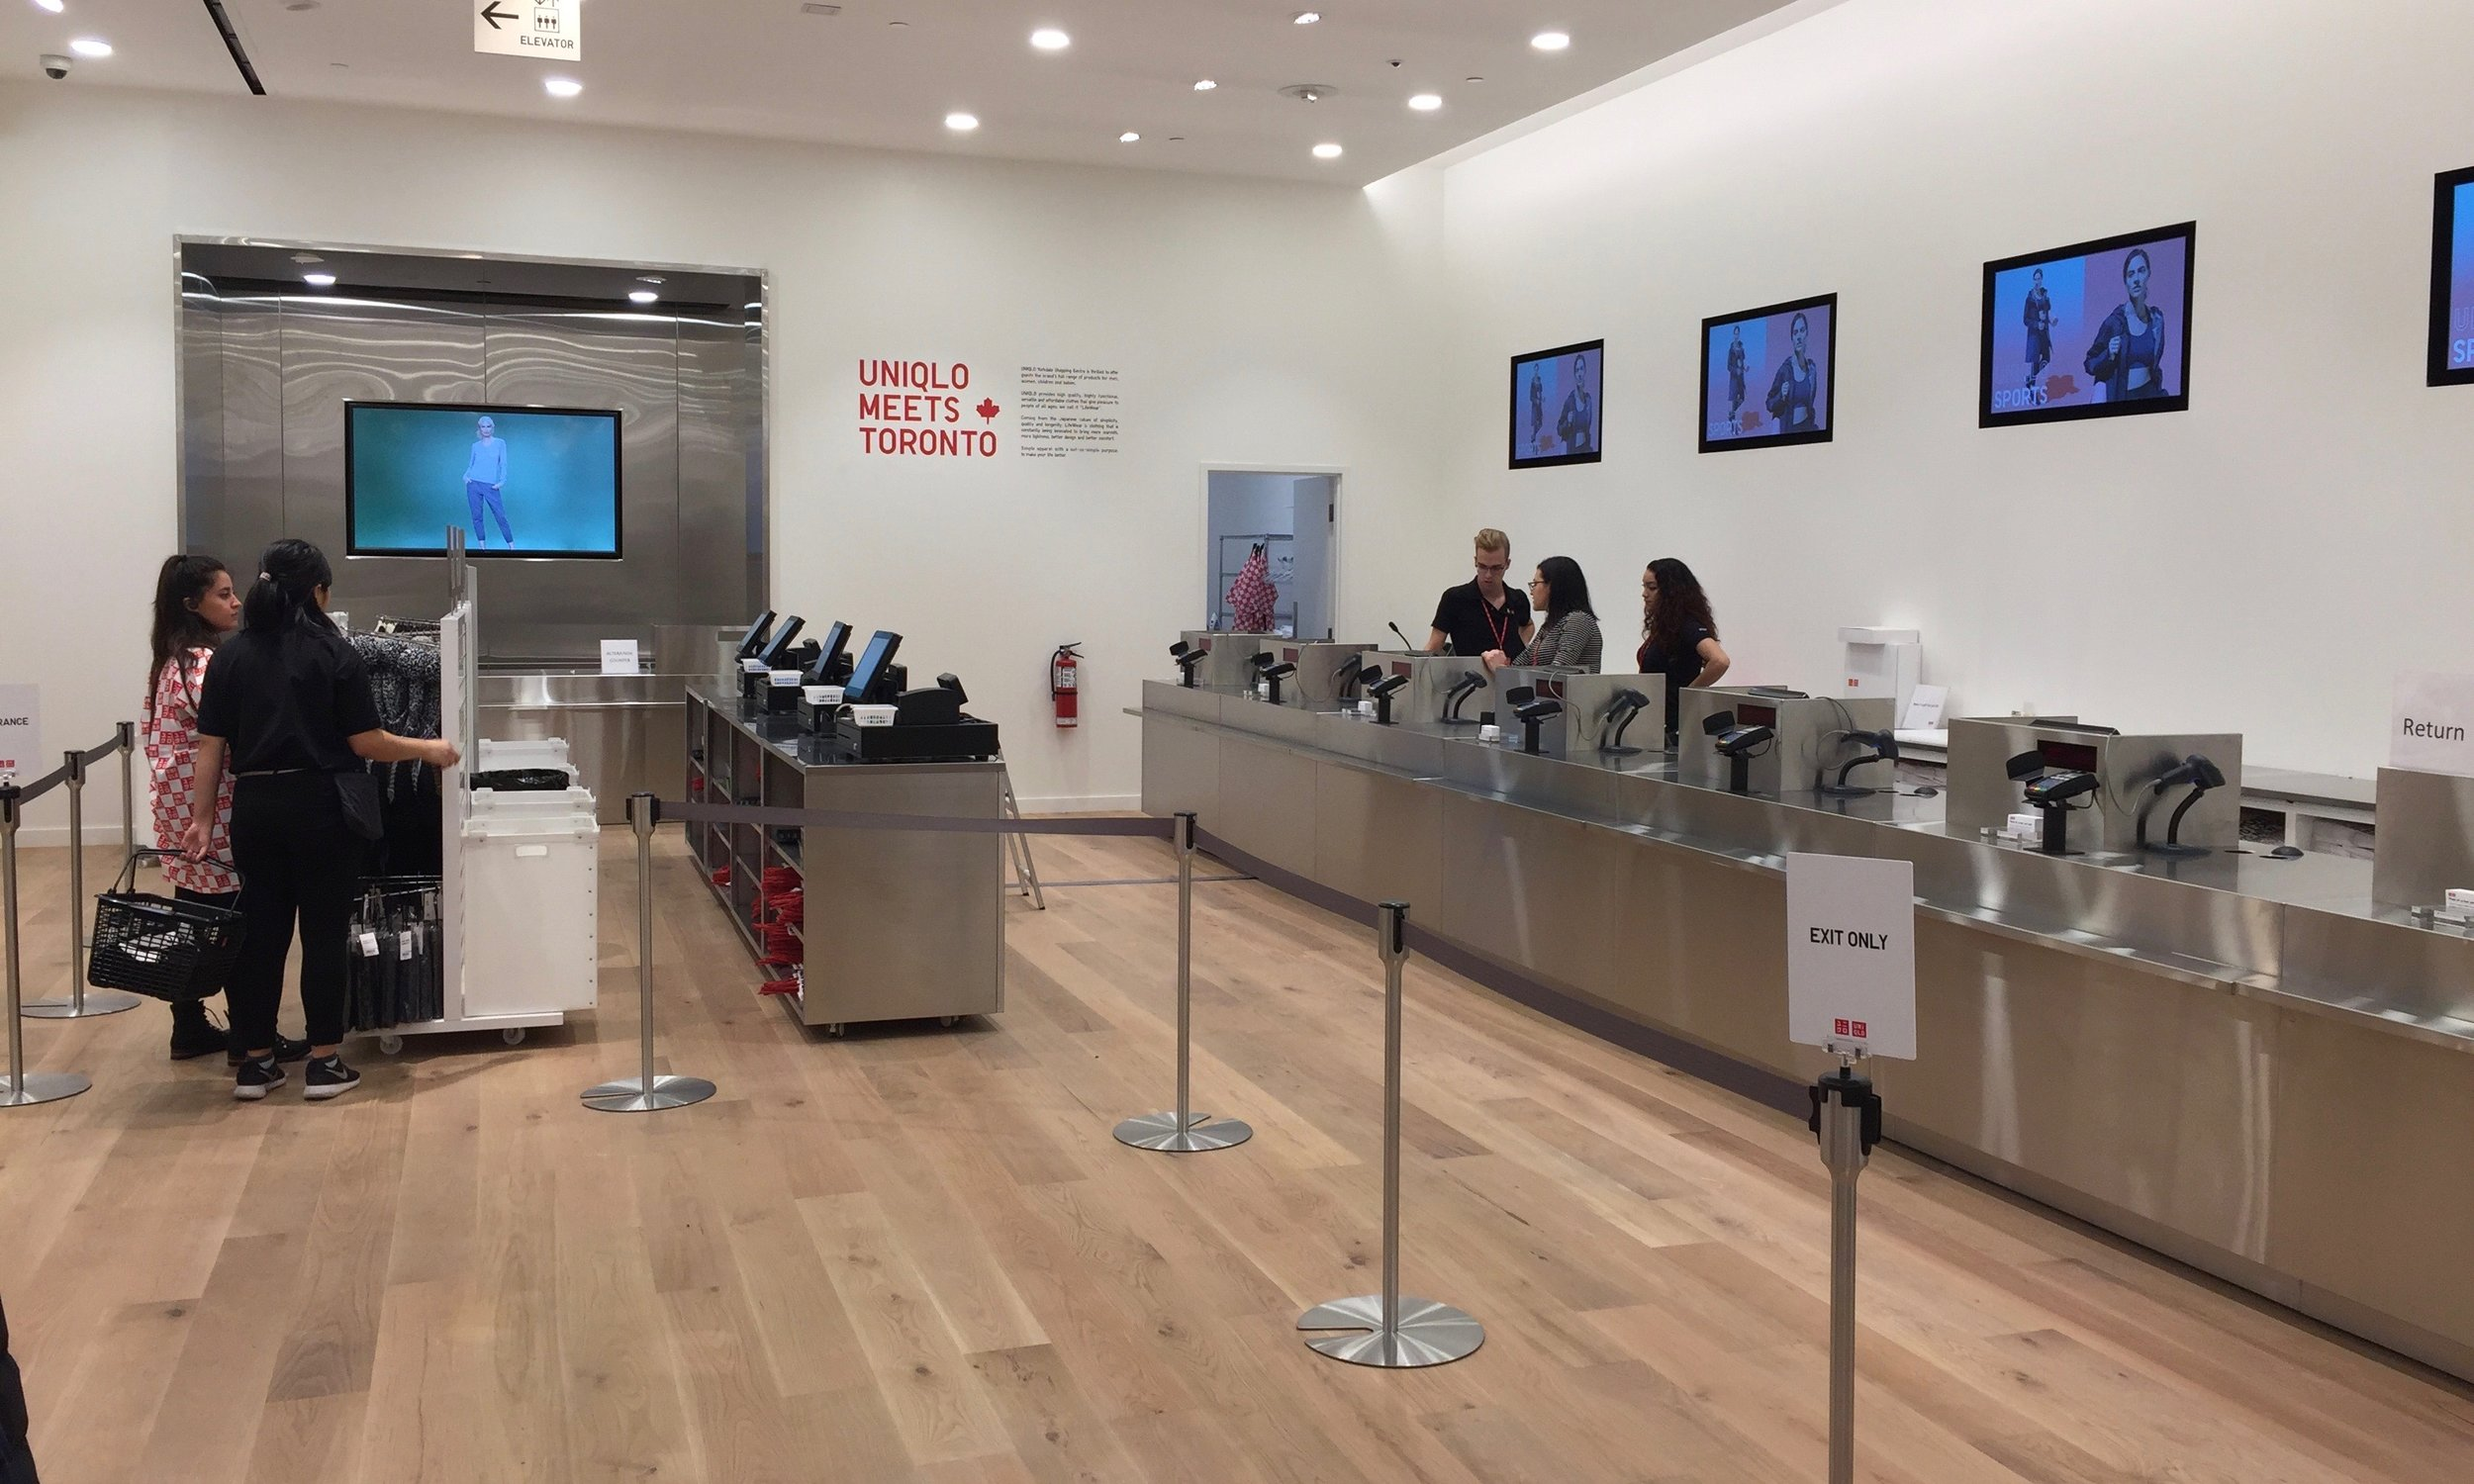 One of two cash register bays